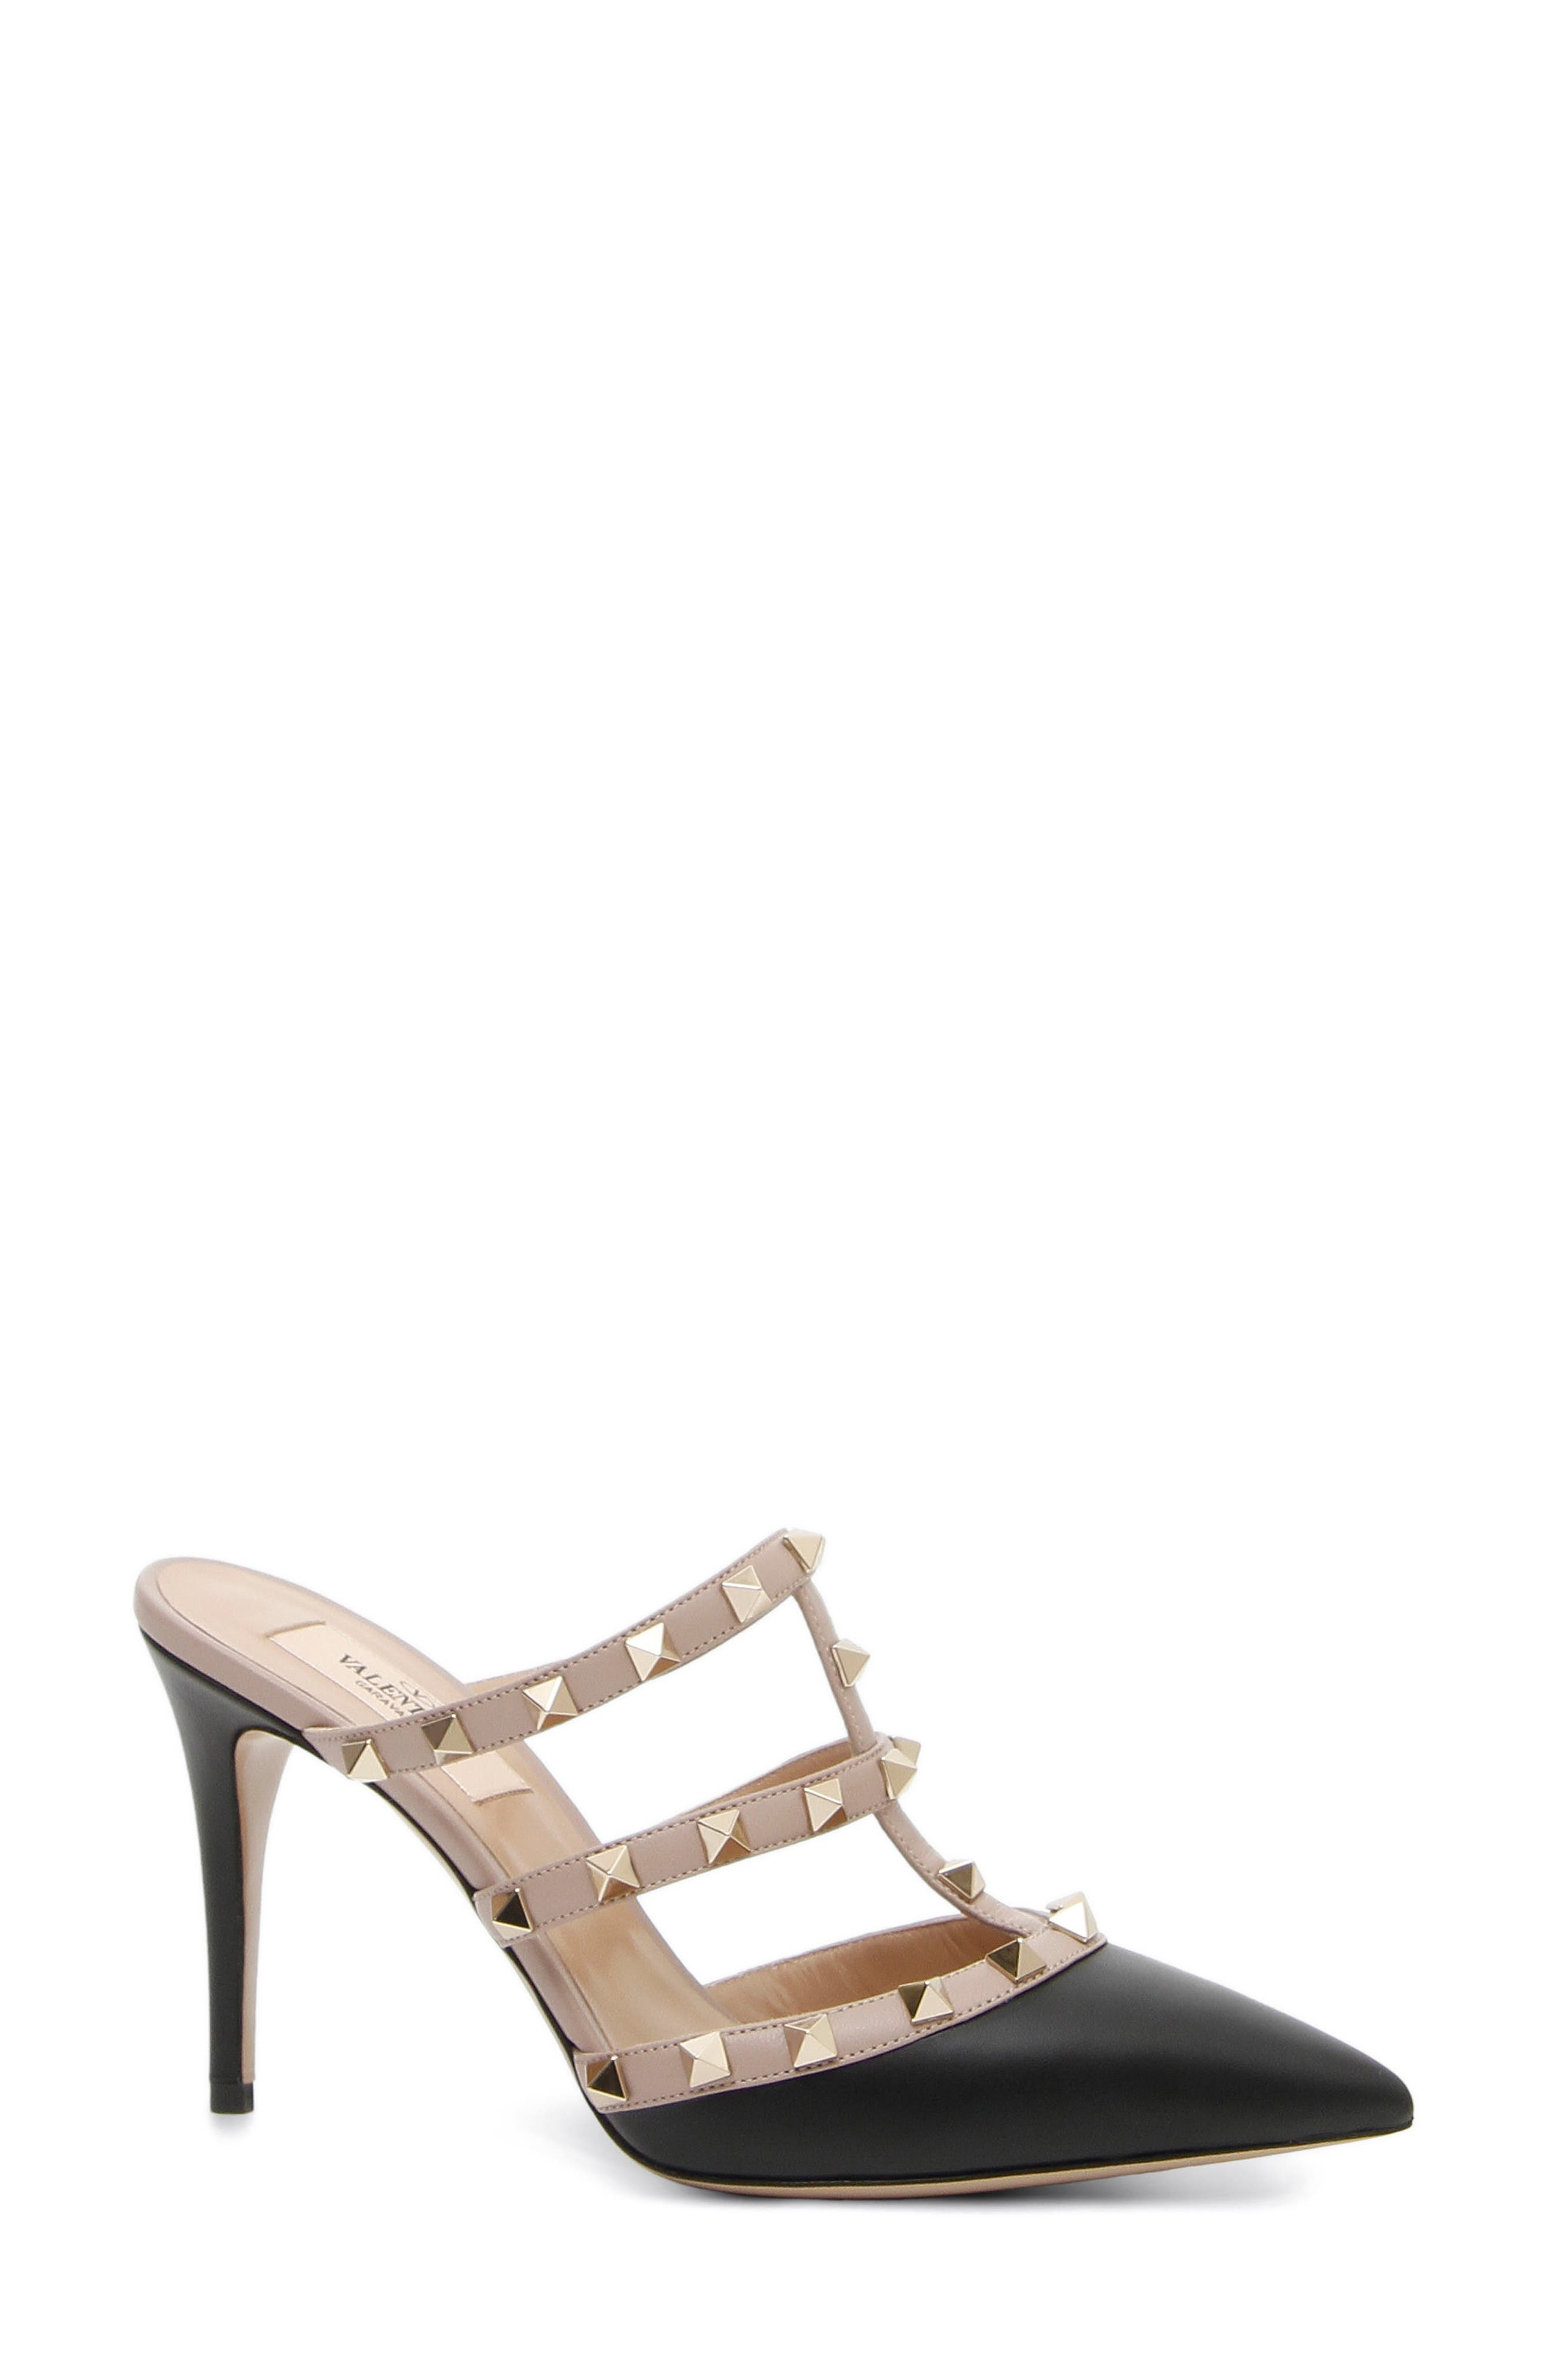 Valentino Shoes Nordstrom Rack | The